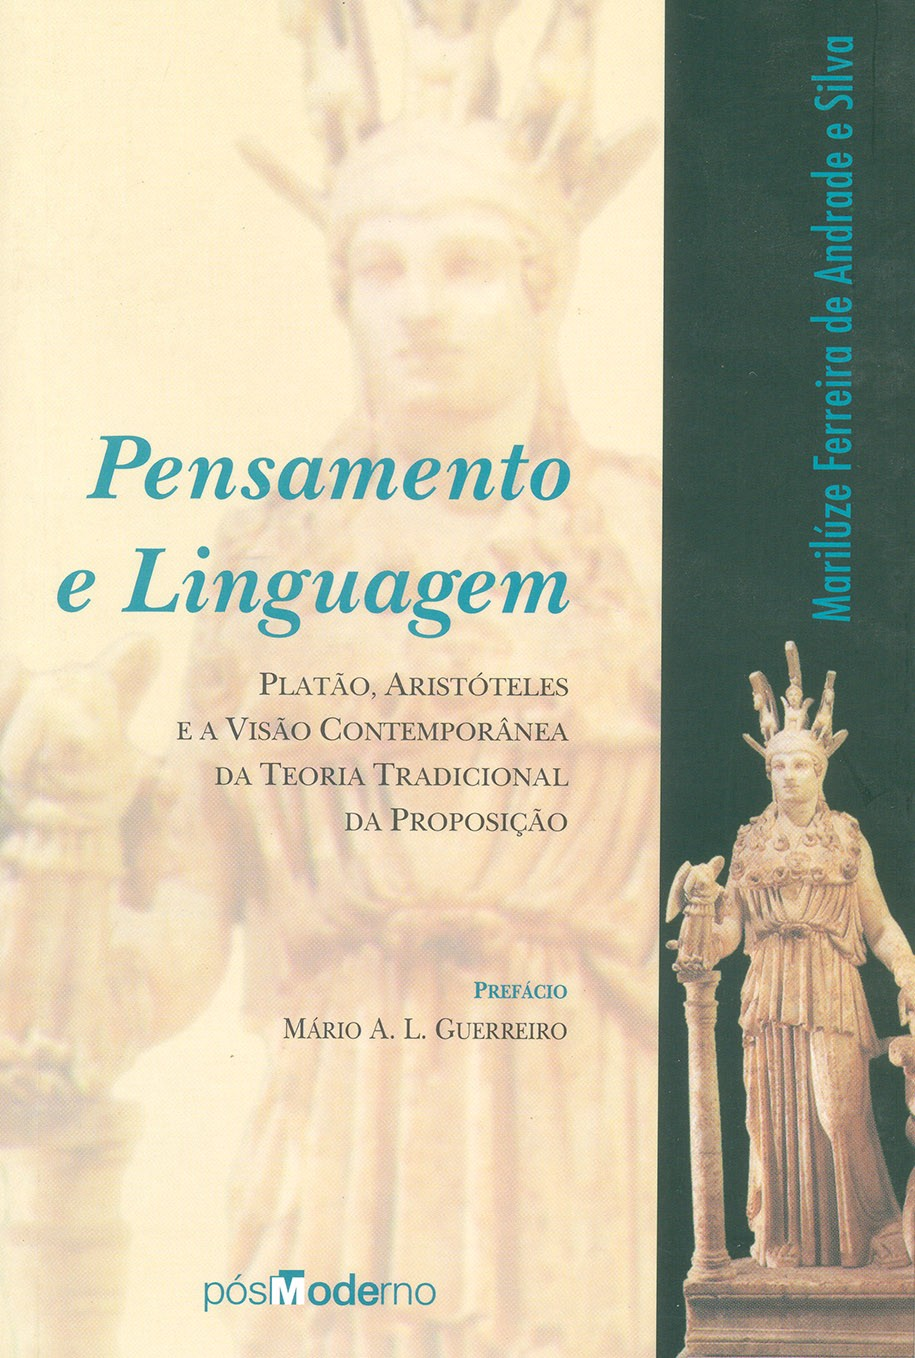 Pensamento e Linguagem